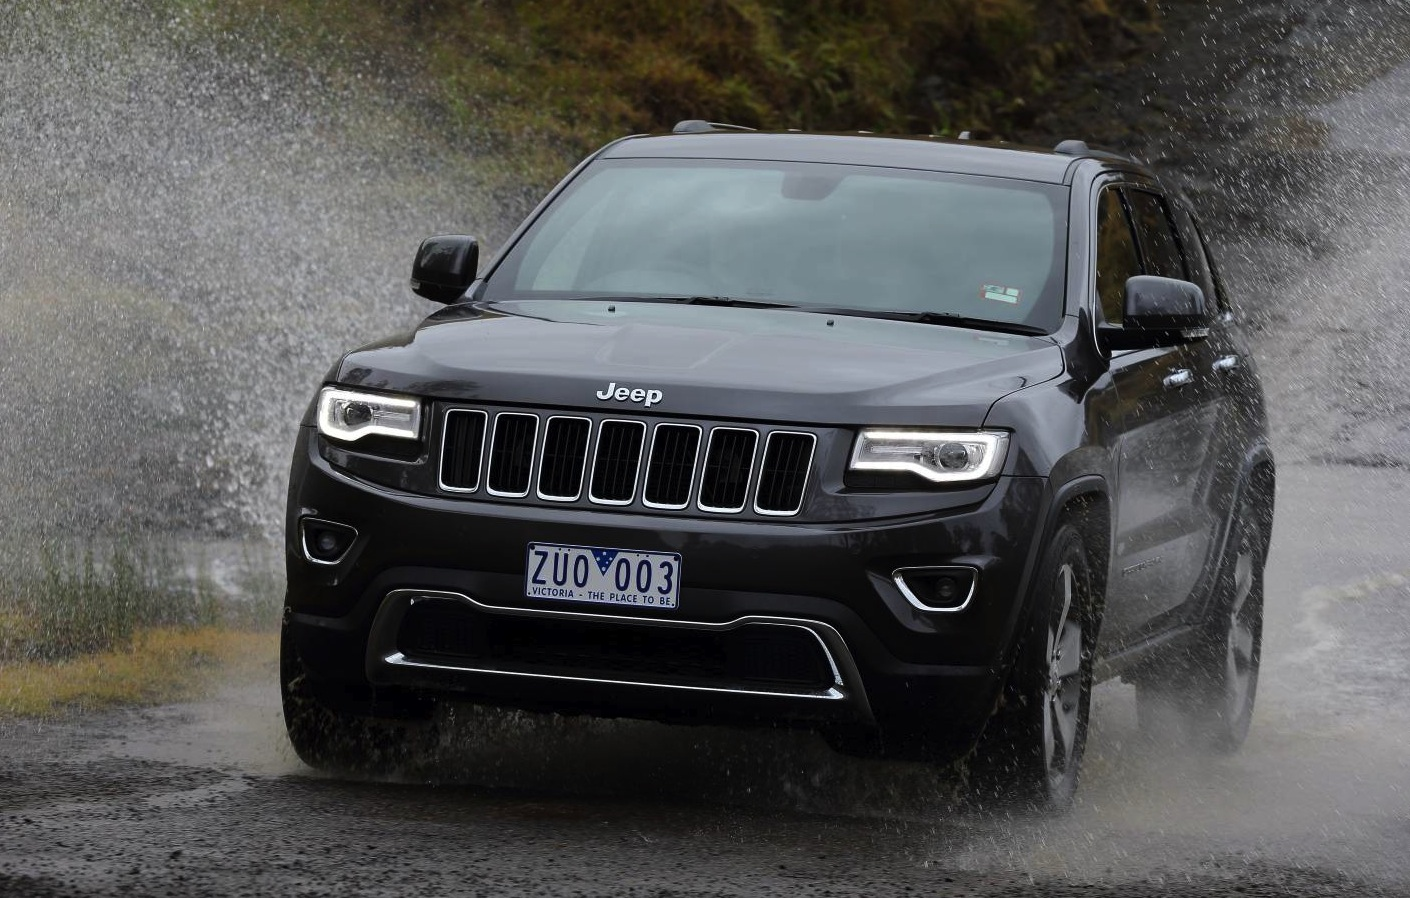 2016 jeep grand cherokee could get turbo pentastar v6 report performancedrive. Black Bedroom Furniture Sets. Home Design Ideas